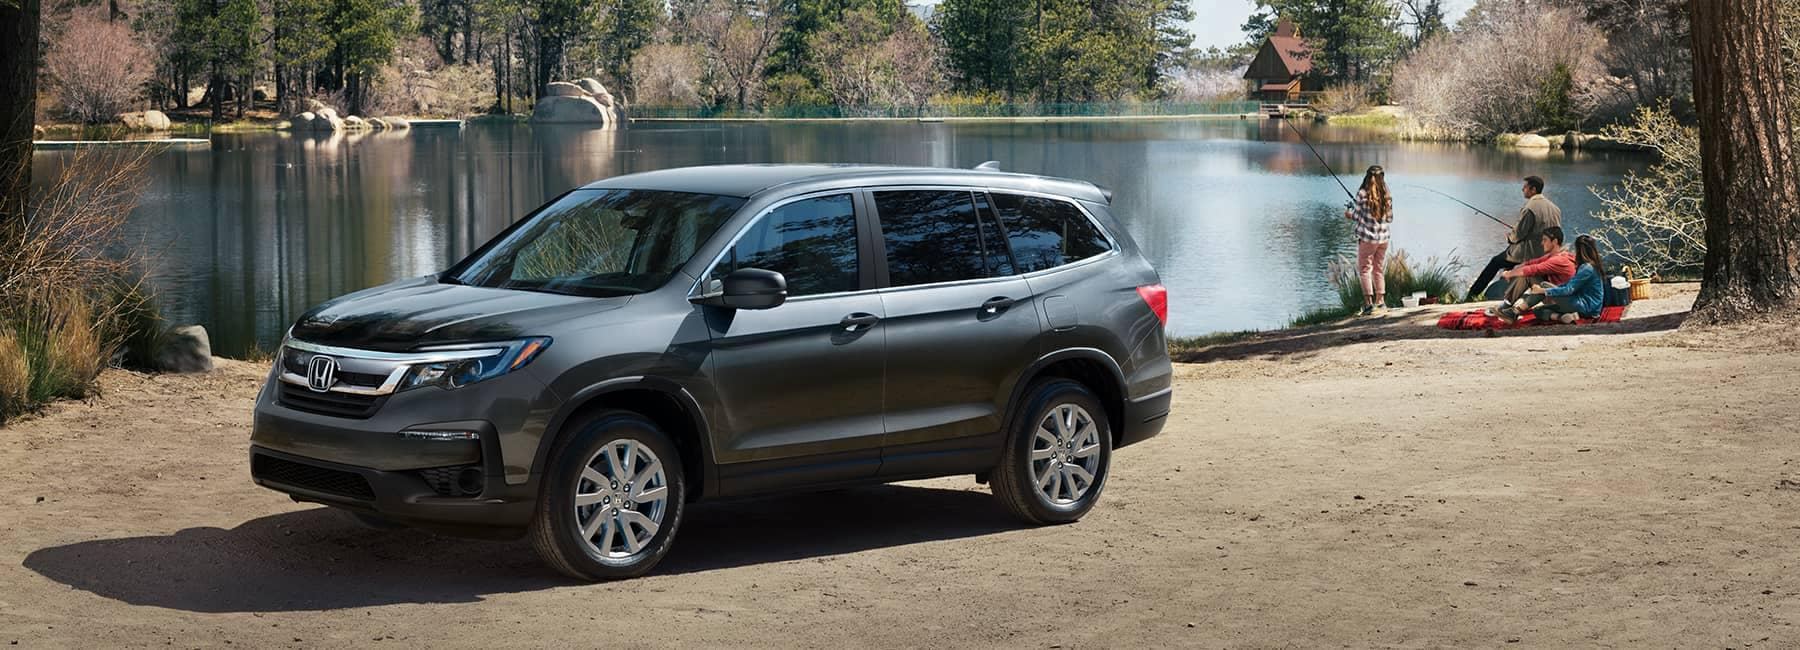 2021 Dark Grey Honda Pilot parked next to a forrest lake_mobile